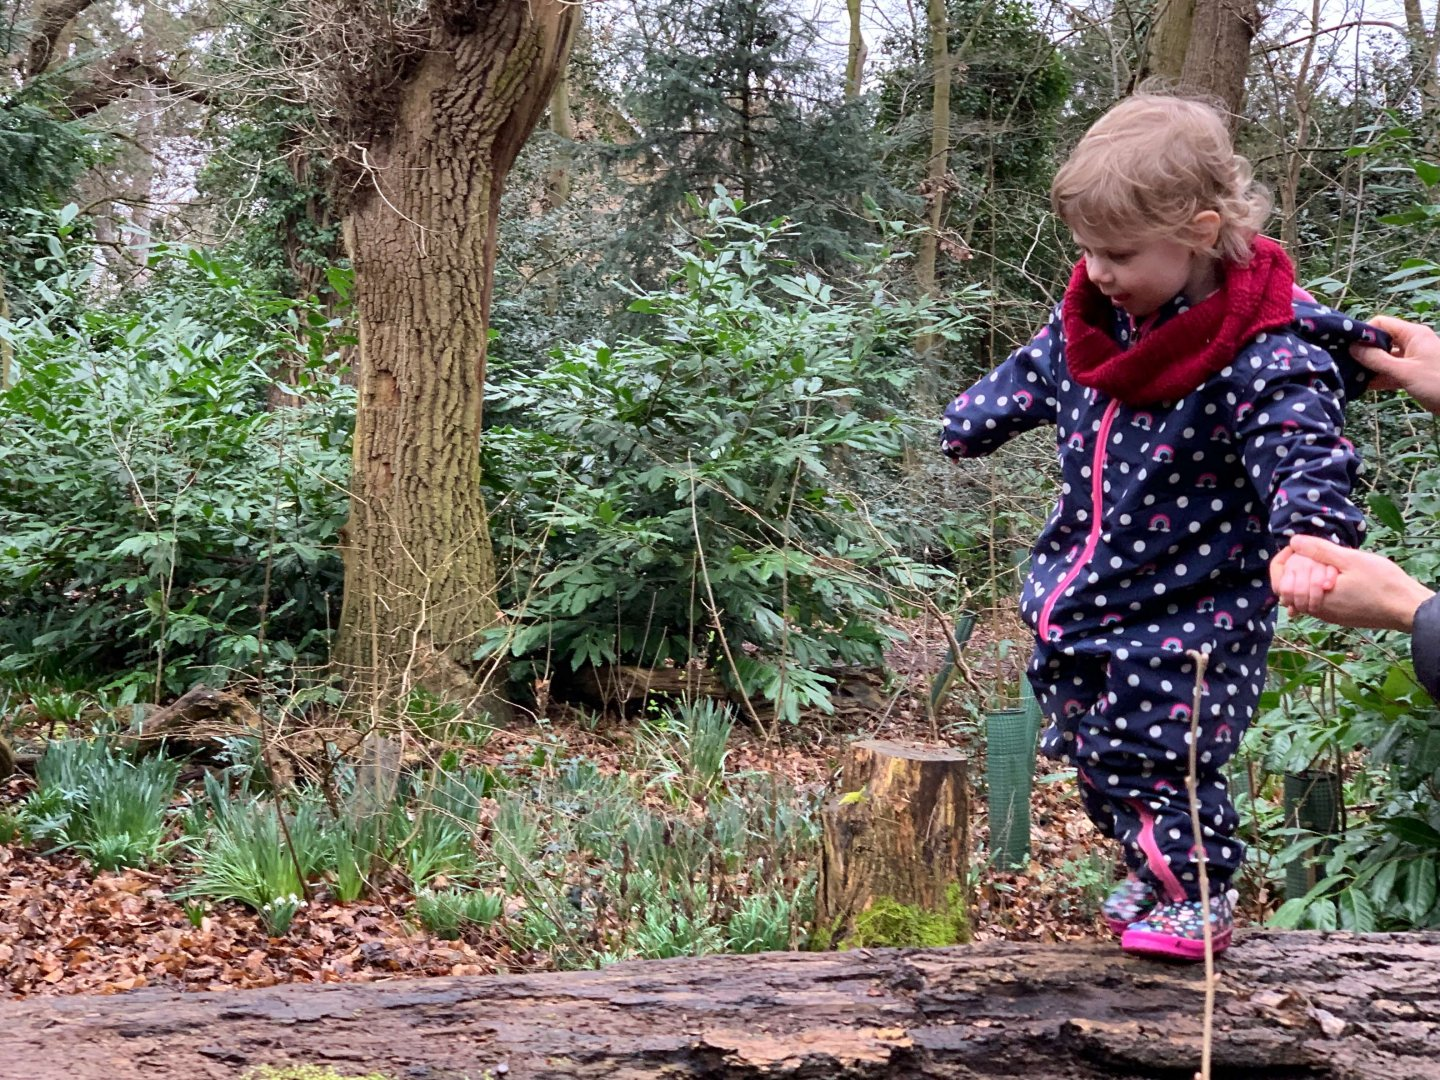 M walking along a log